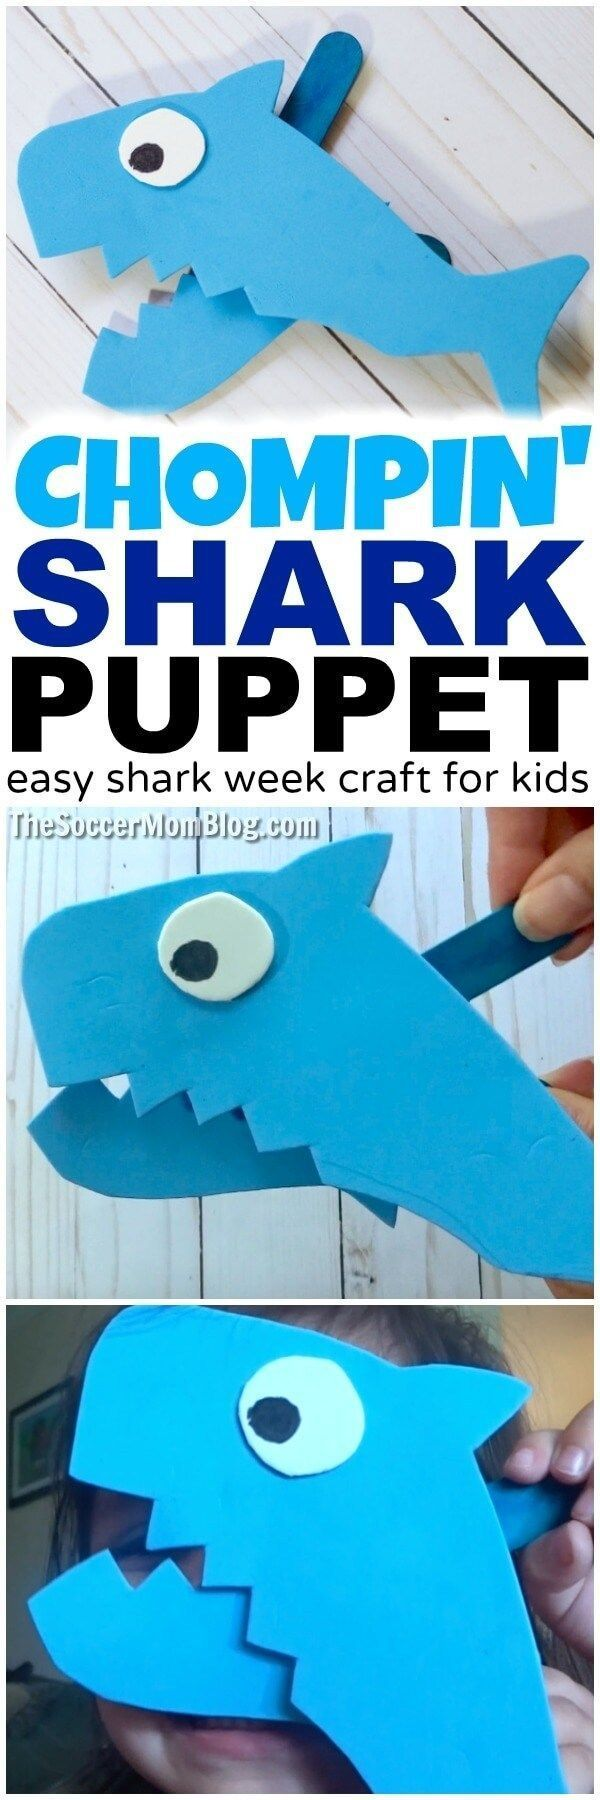 crafting ideas for kids best 25 shark week crafts ideas on shark week 4114